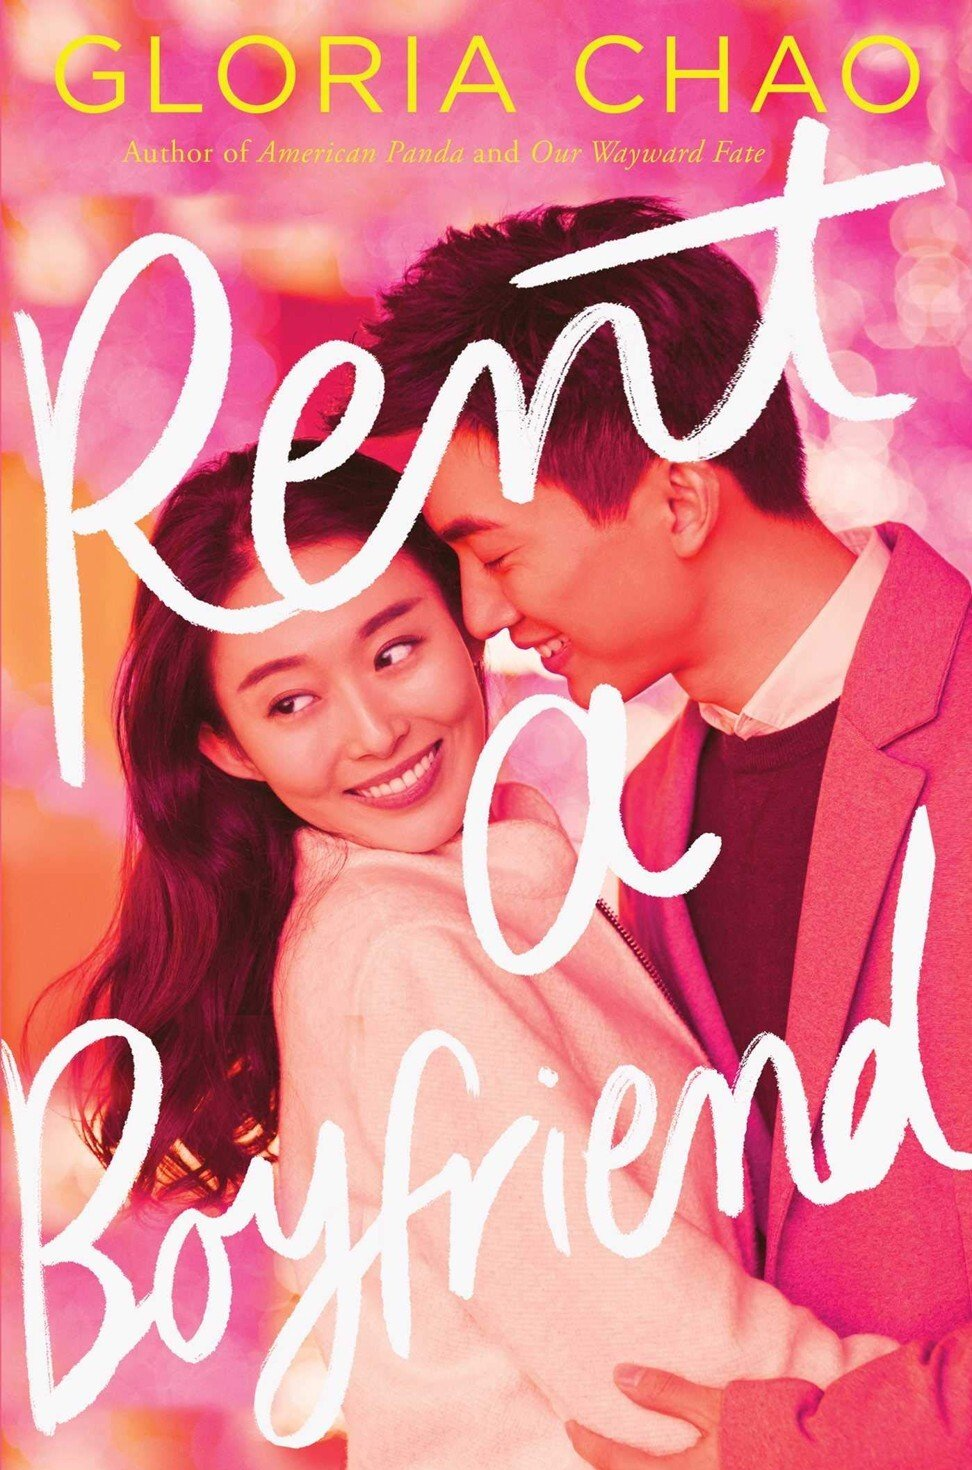 Review | Rent a Boyfriend by Gloria Chao is a fun and flirty Asian-American romantic comedy